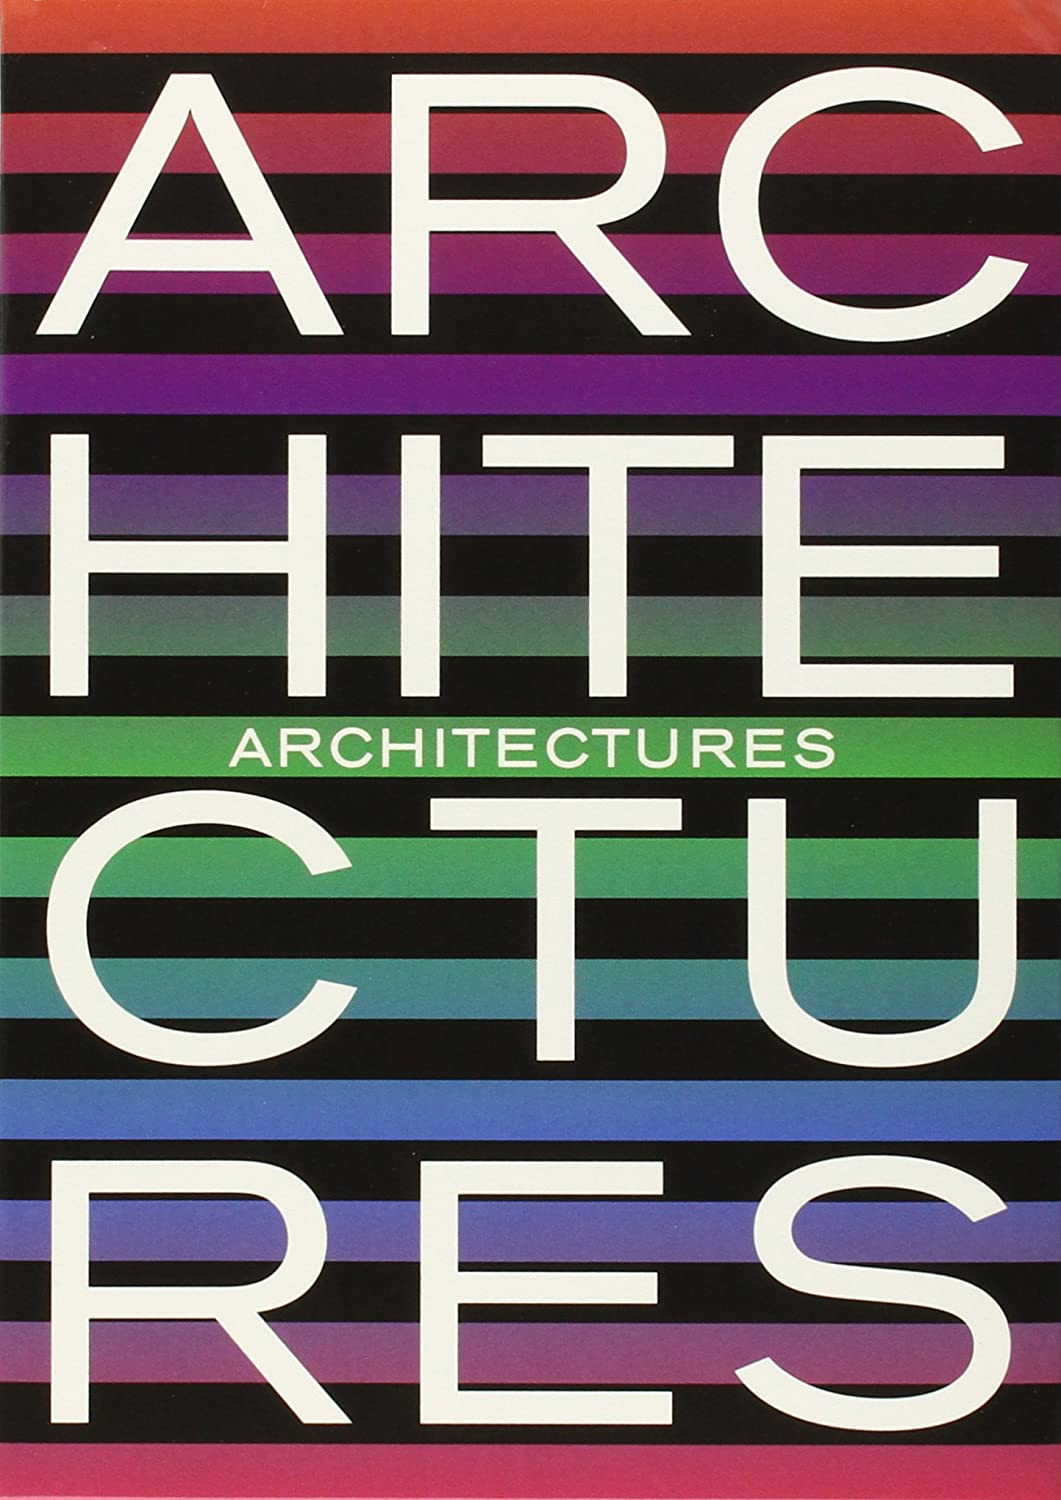 Amazon.com: Architectures Vol.1-5 [DVD] [NTSC]: Movies & TV